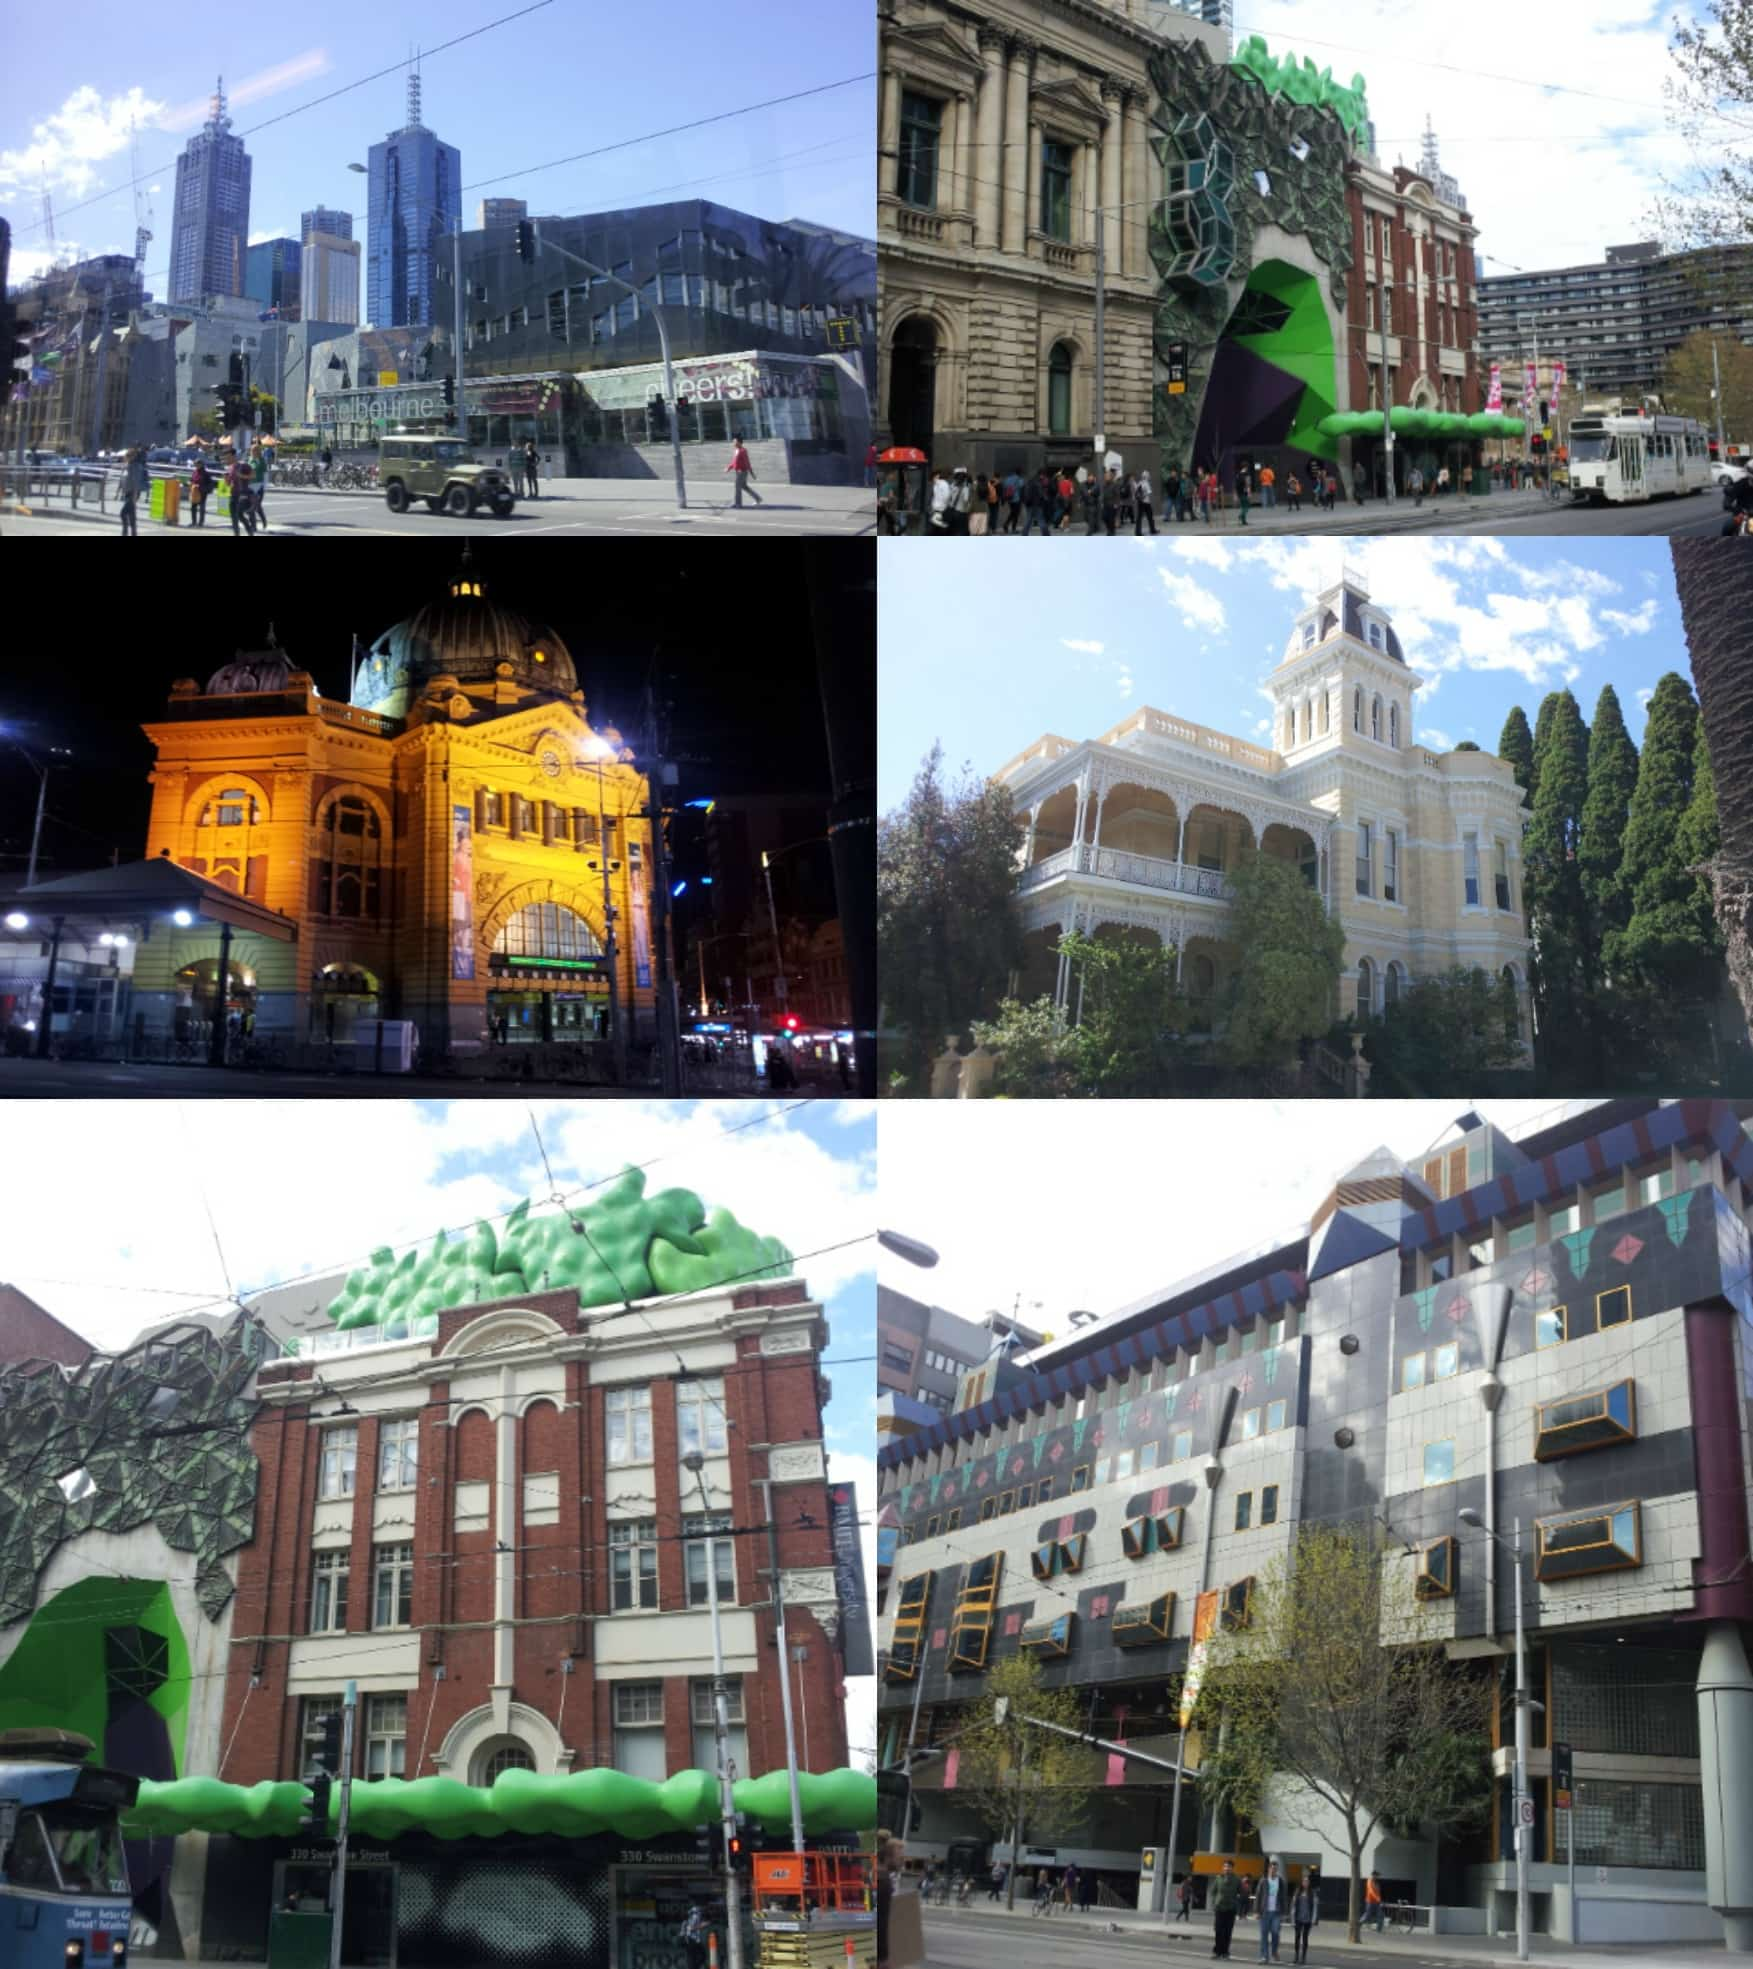 Melbourne ArchitectureCollage